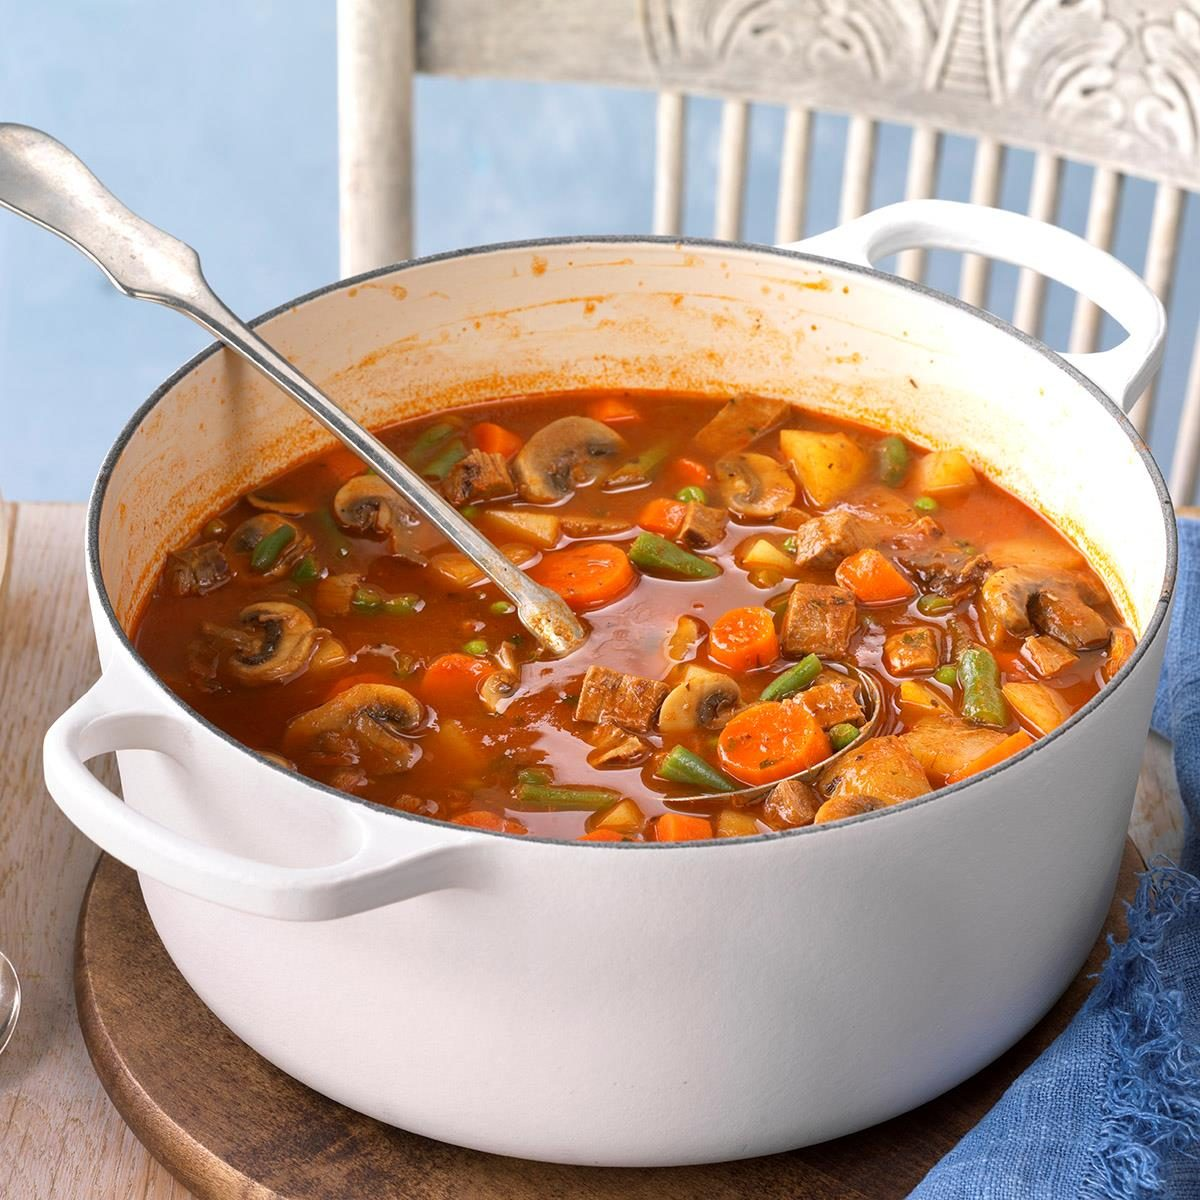 70 Low Calorie Recipes For High Stress Days: Beef Veggie Soup Recipe